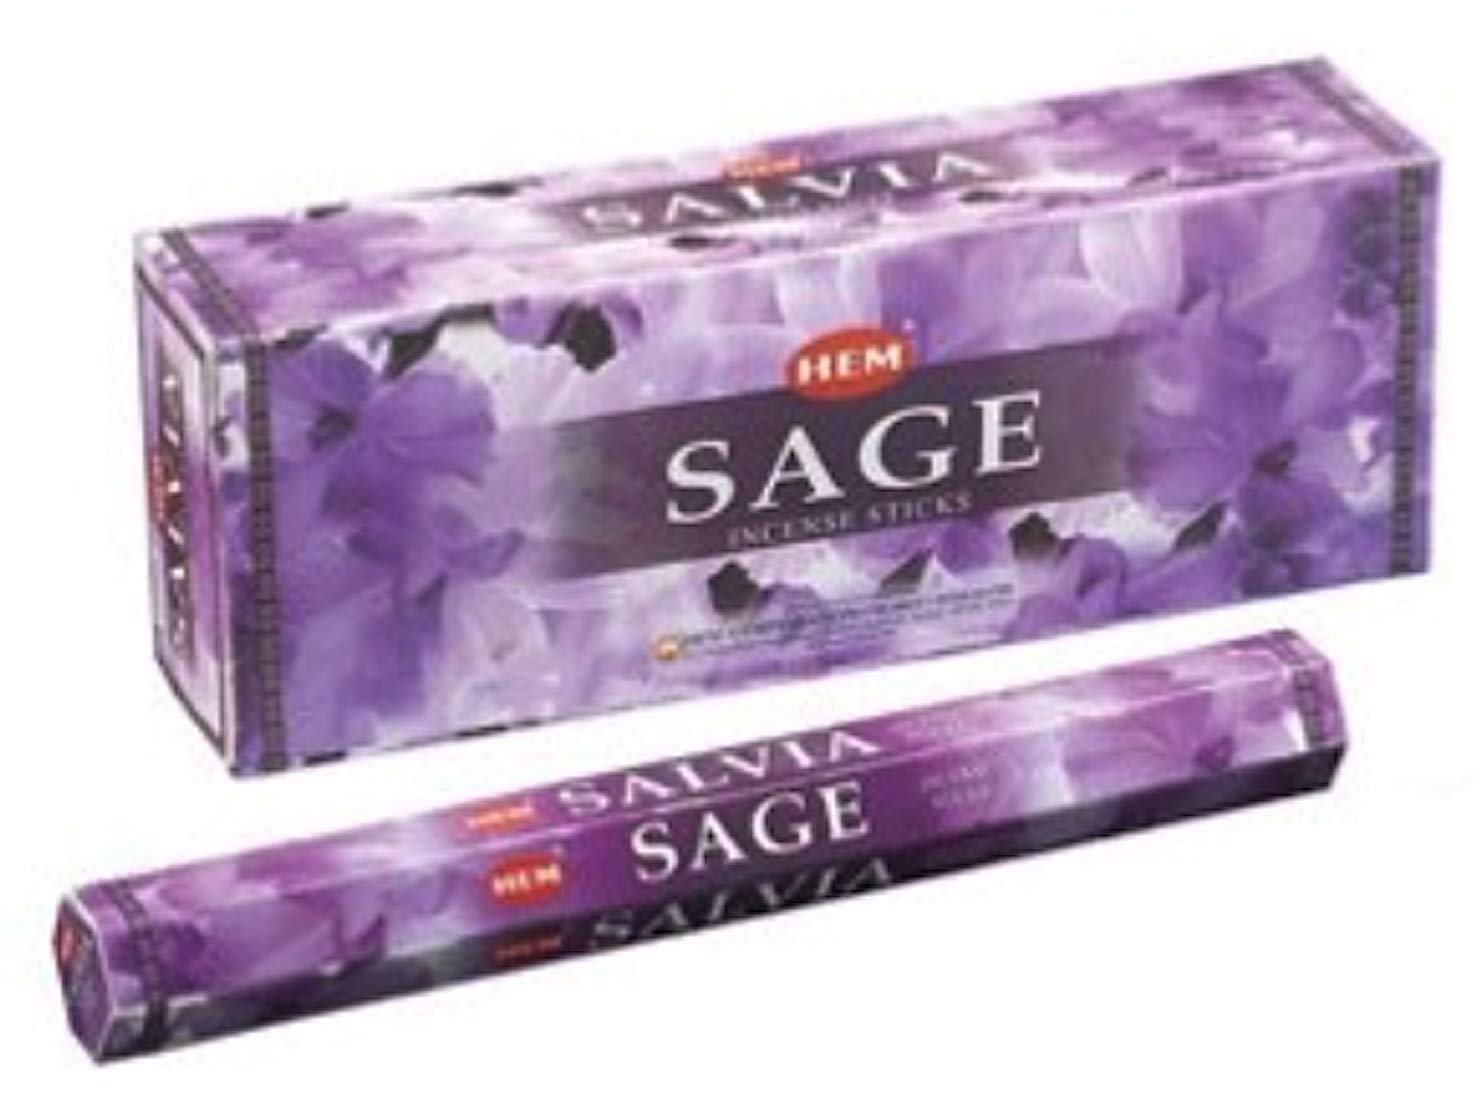 BuddyDee Sage - Box of Six 20 Stick Hex Tubes - HEM Incense Hand Rolled In India